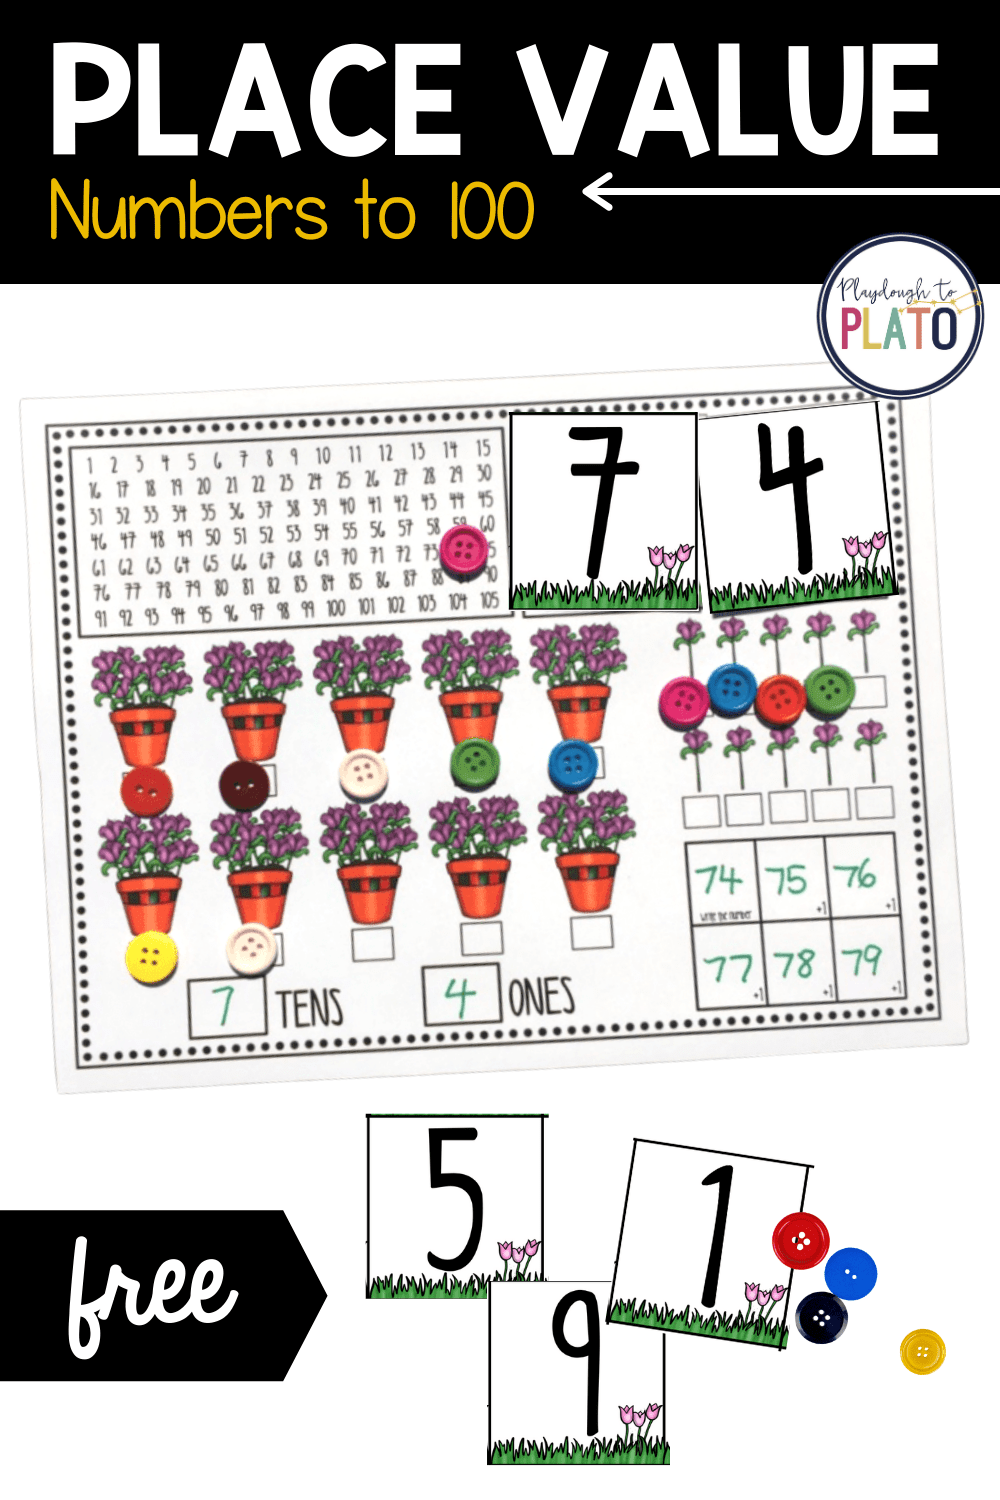 Place Value Activity Mats to 100